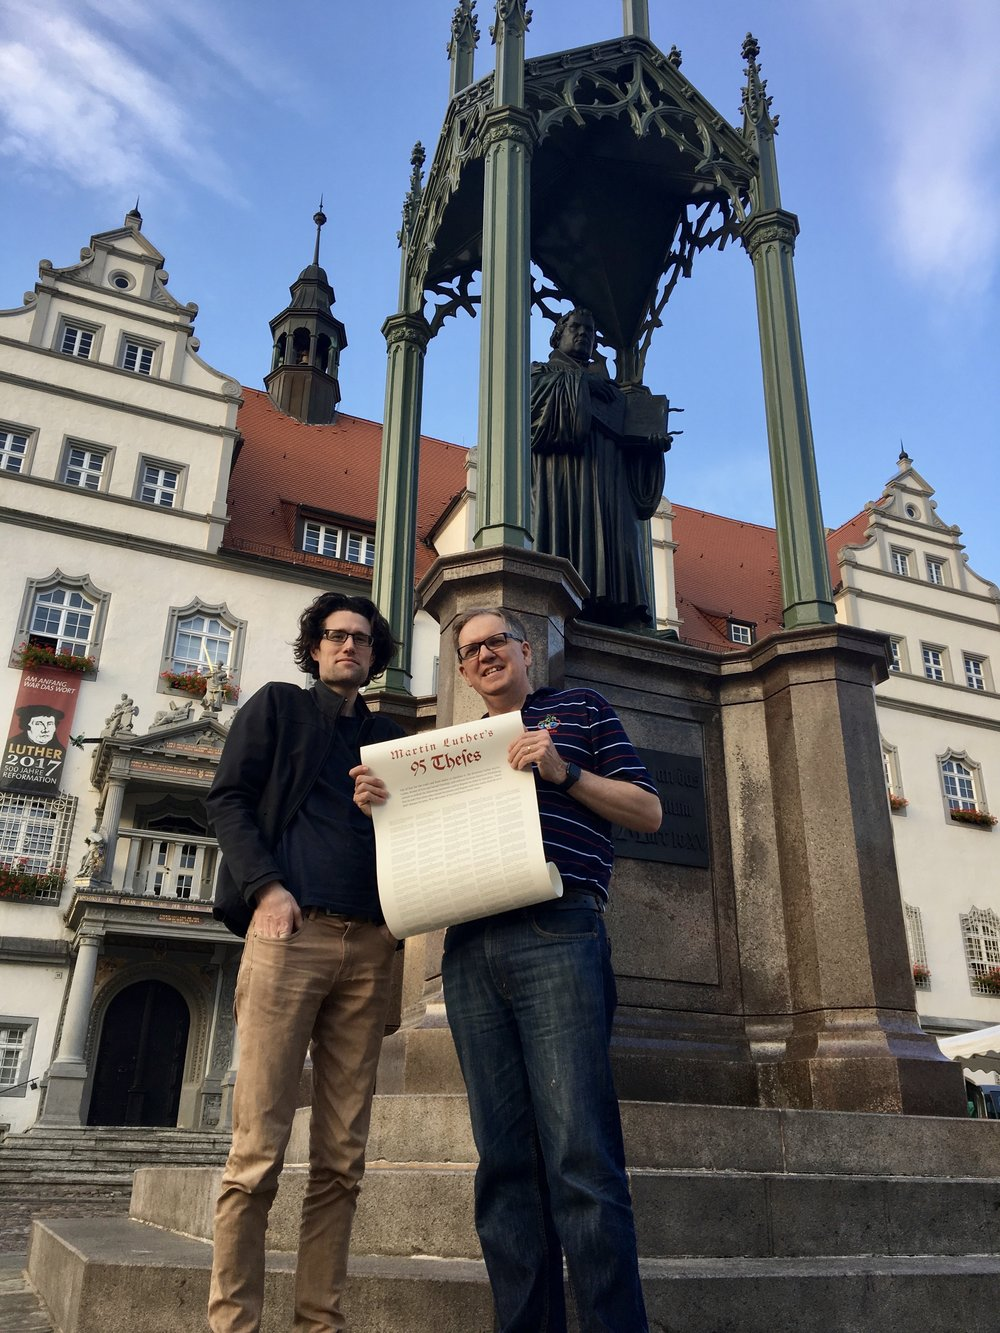 Dominic Steele (right) with Jared Marshall in front of Martin Luther's statue in the main town square of Wittenburg.